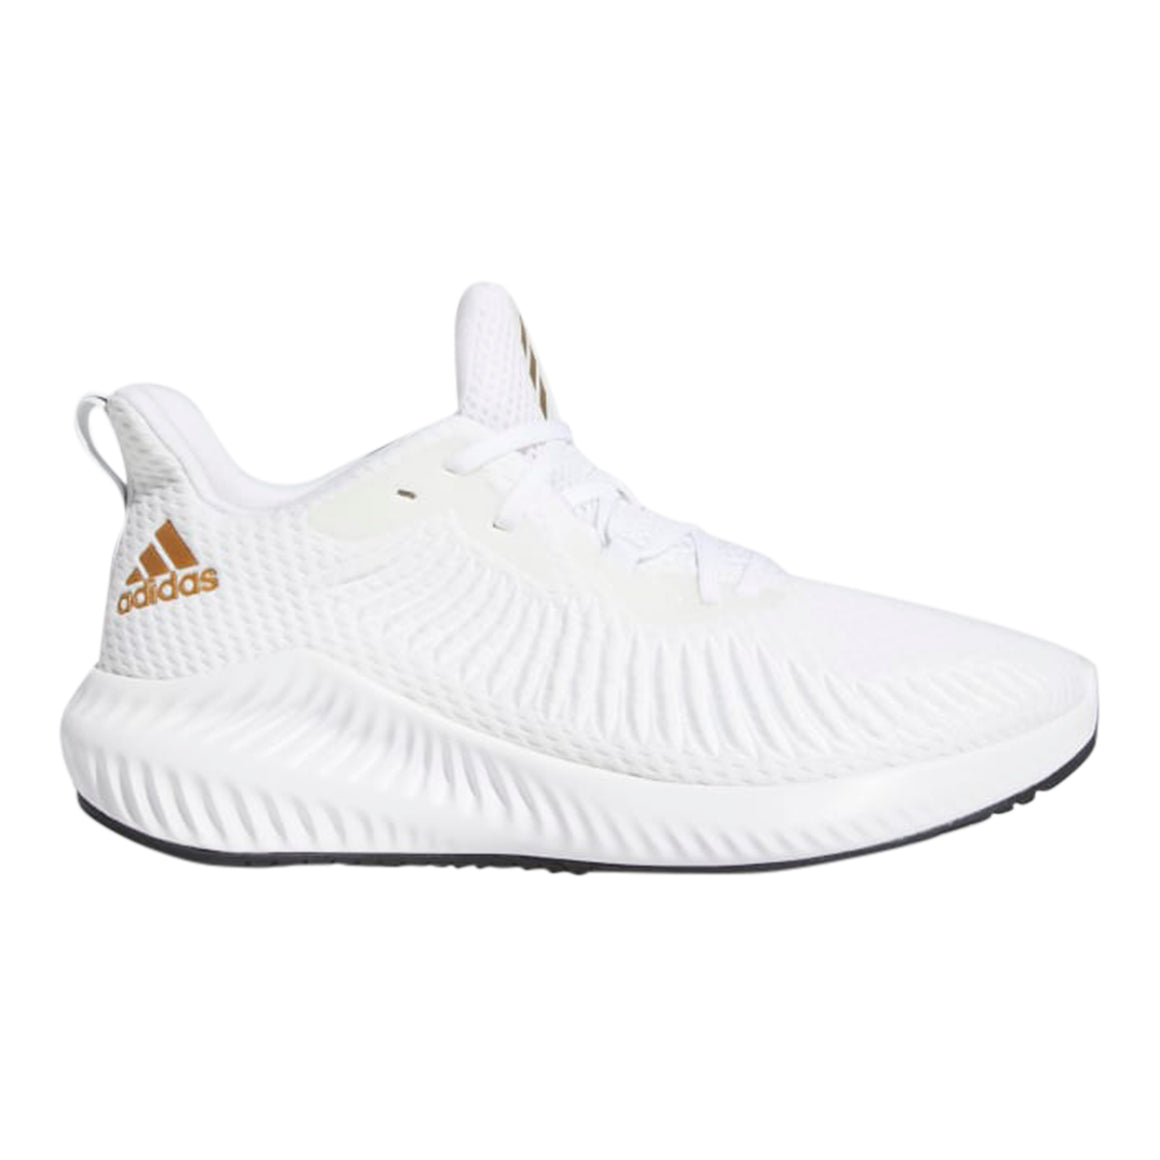 Alphabounce 3 W for Women in White